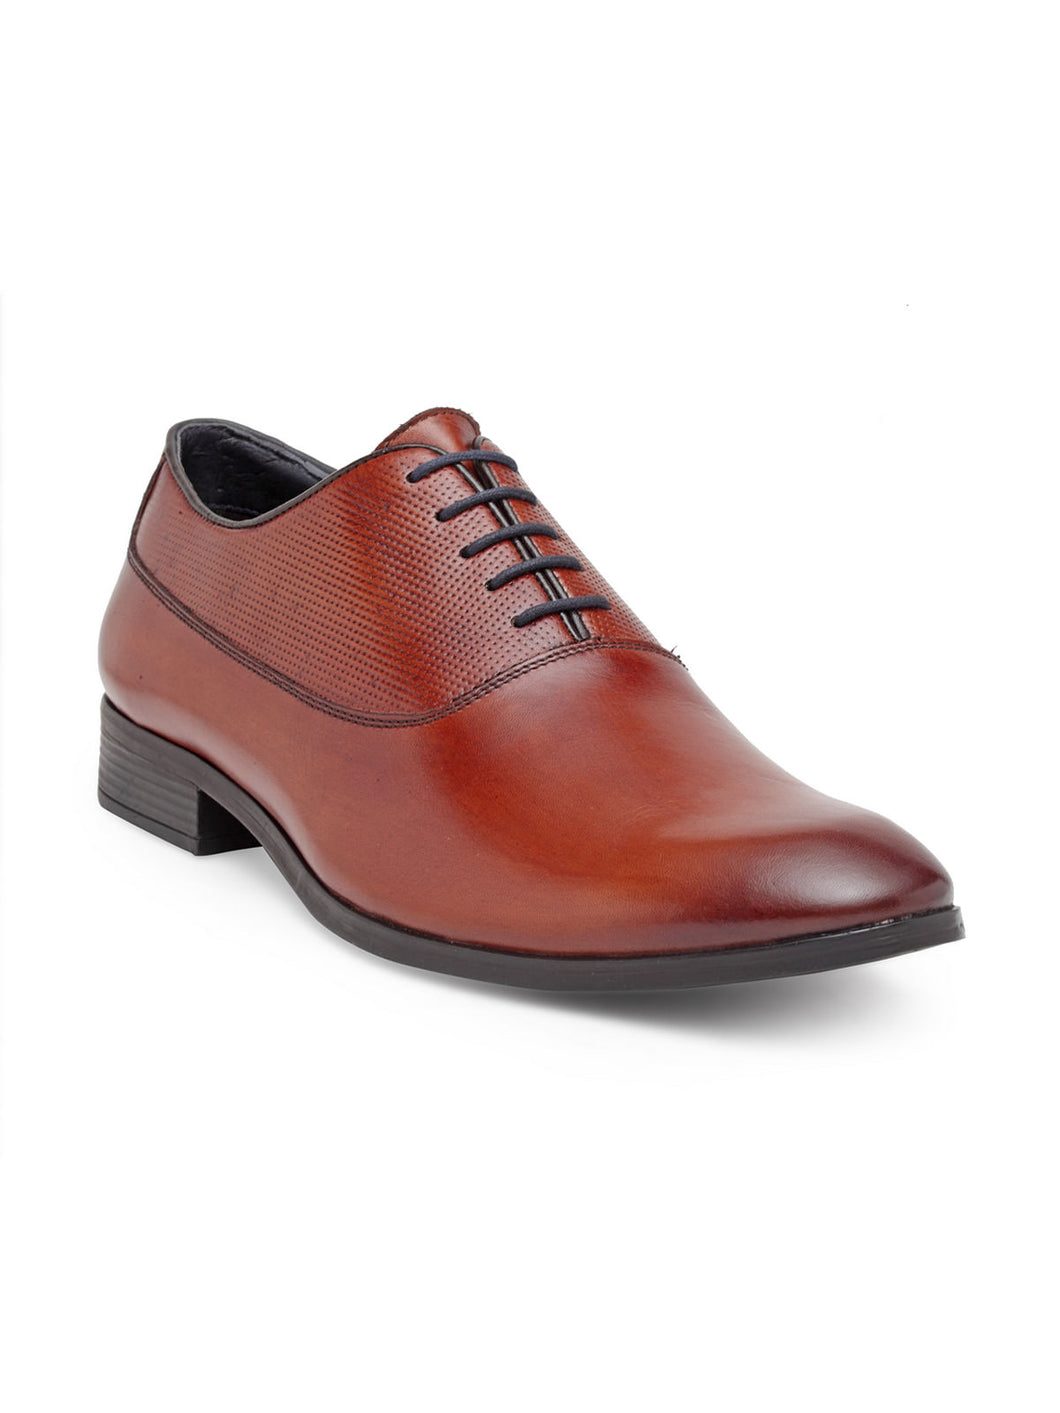 Teakwood Genuine Leather Tan Oxford Shoes